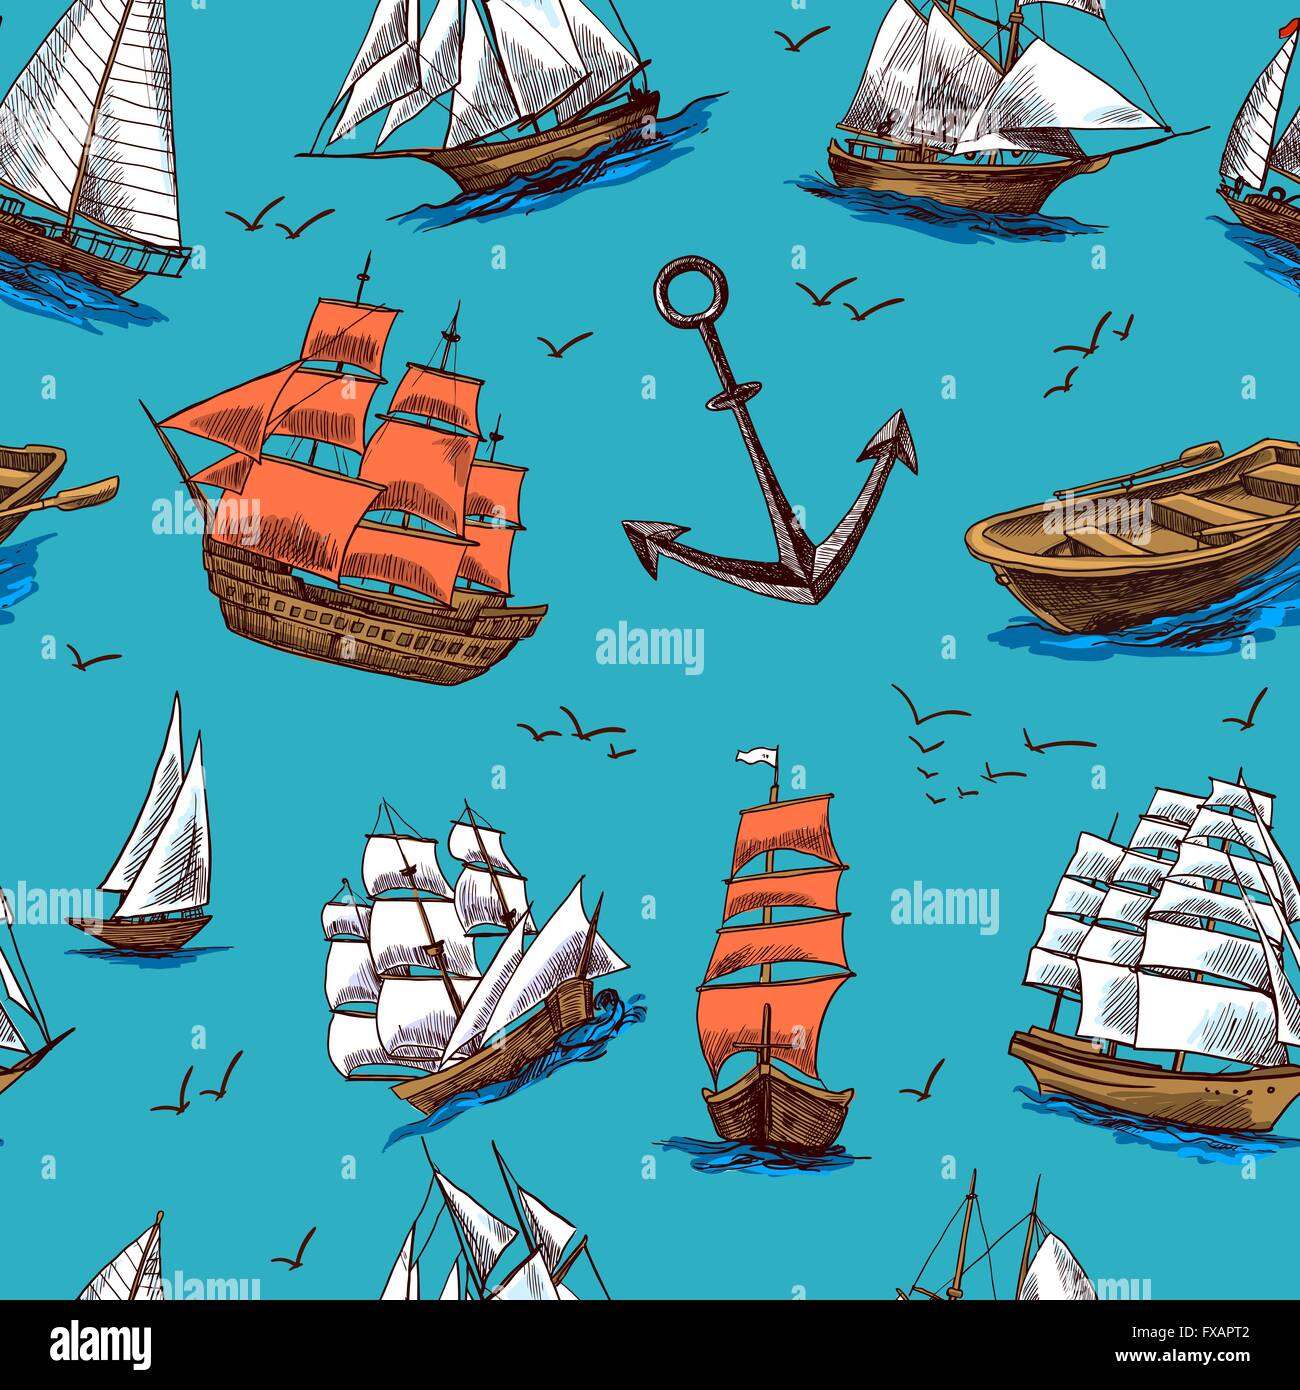 Ships and boats sketch seamless pattern - Stock Vector